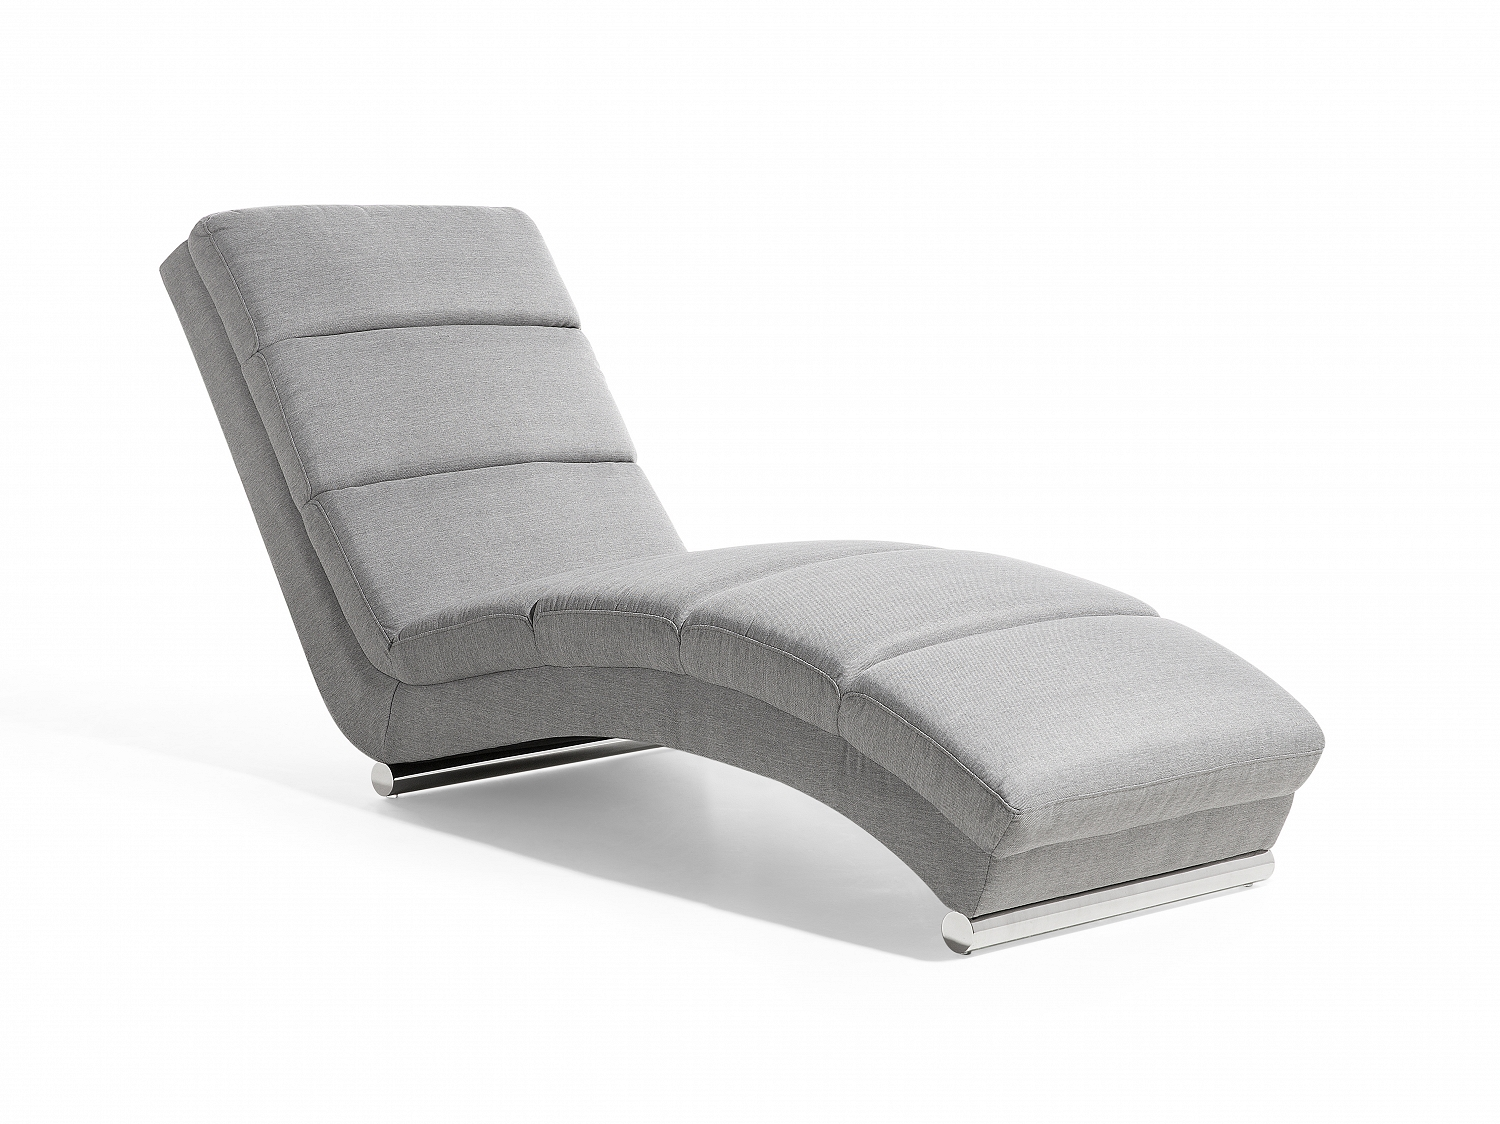 chaise longue lounge chair padded seat light grey ebay